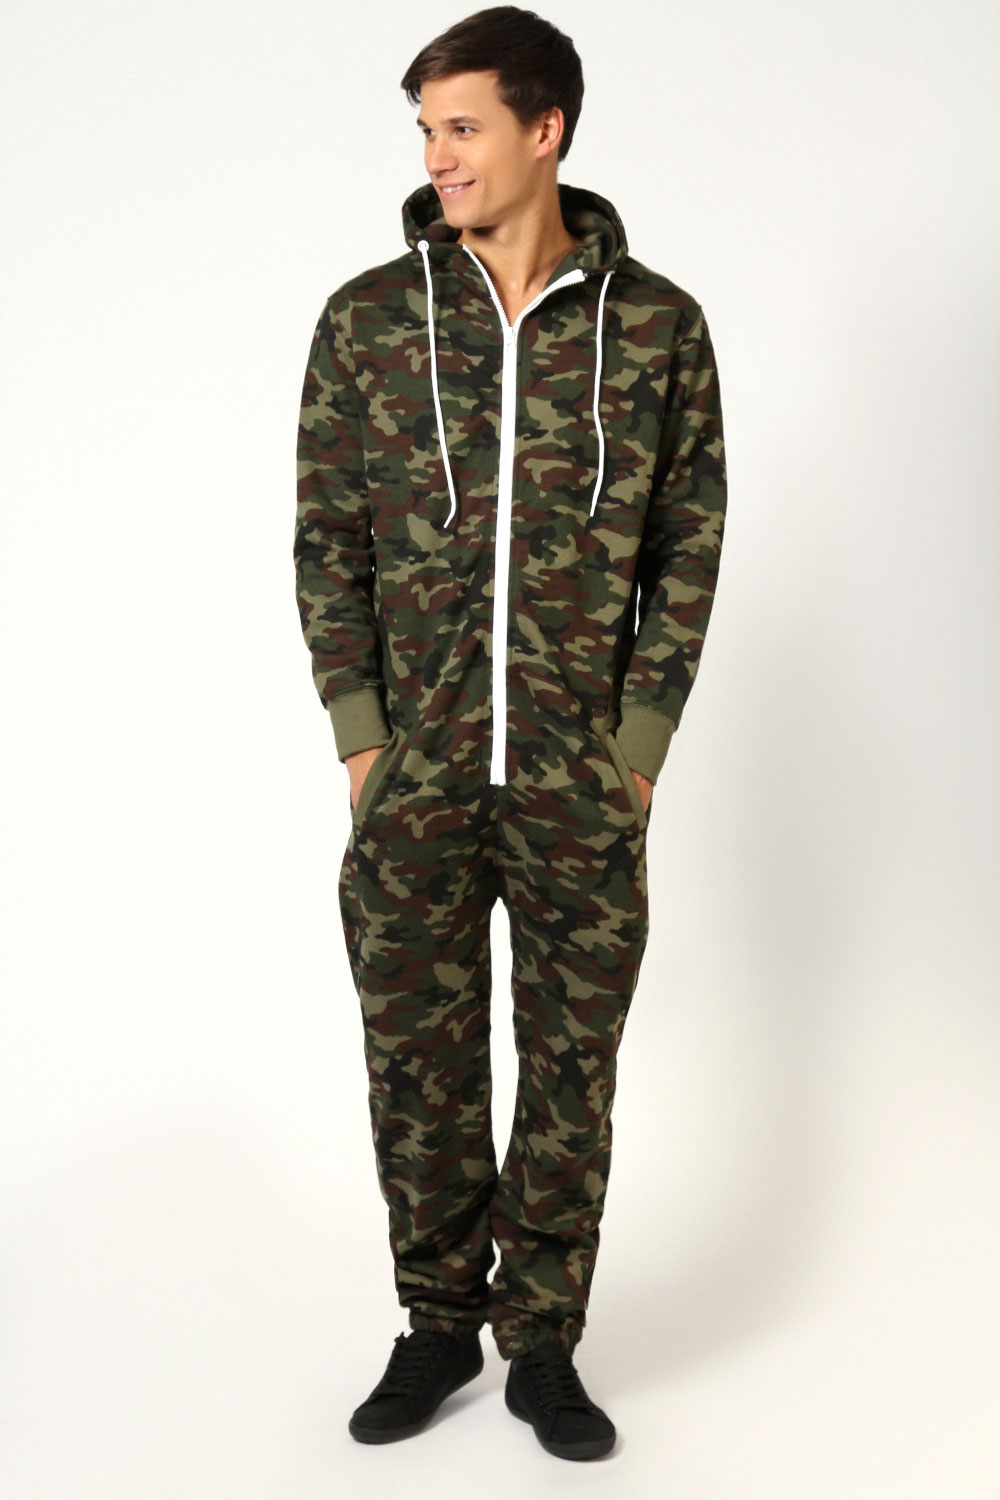 Find great deals on eBay for camo onesies. Shop with confidence.